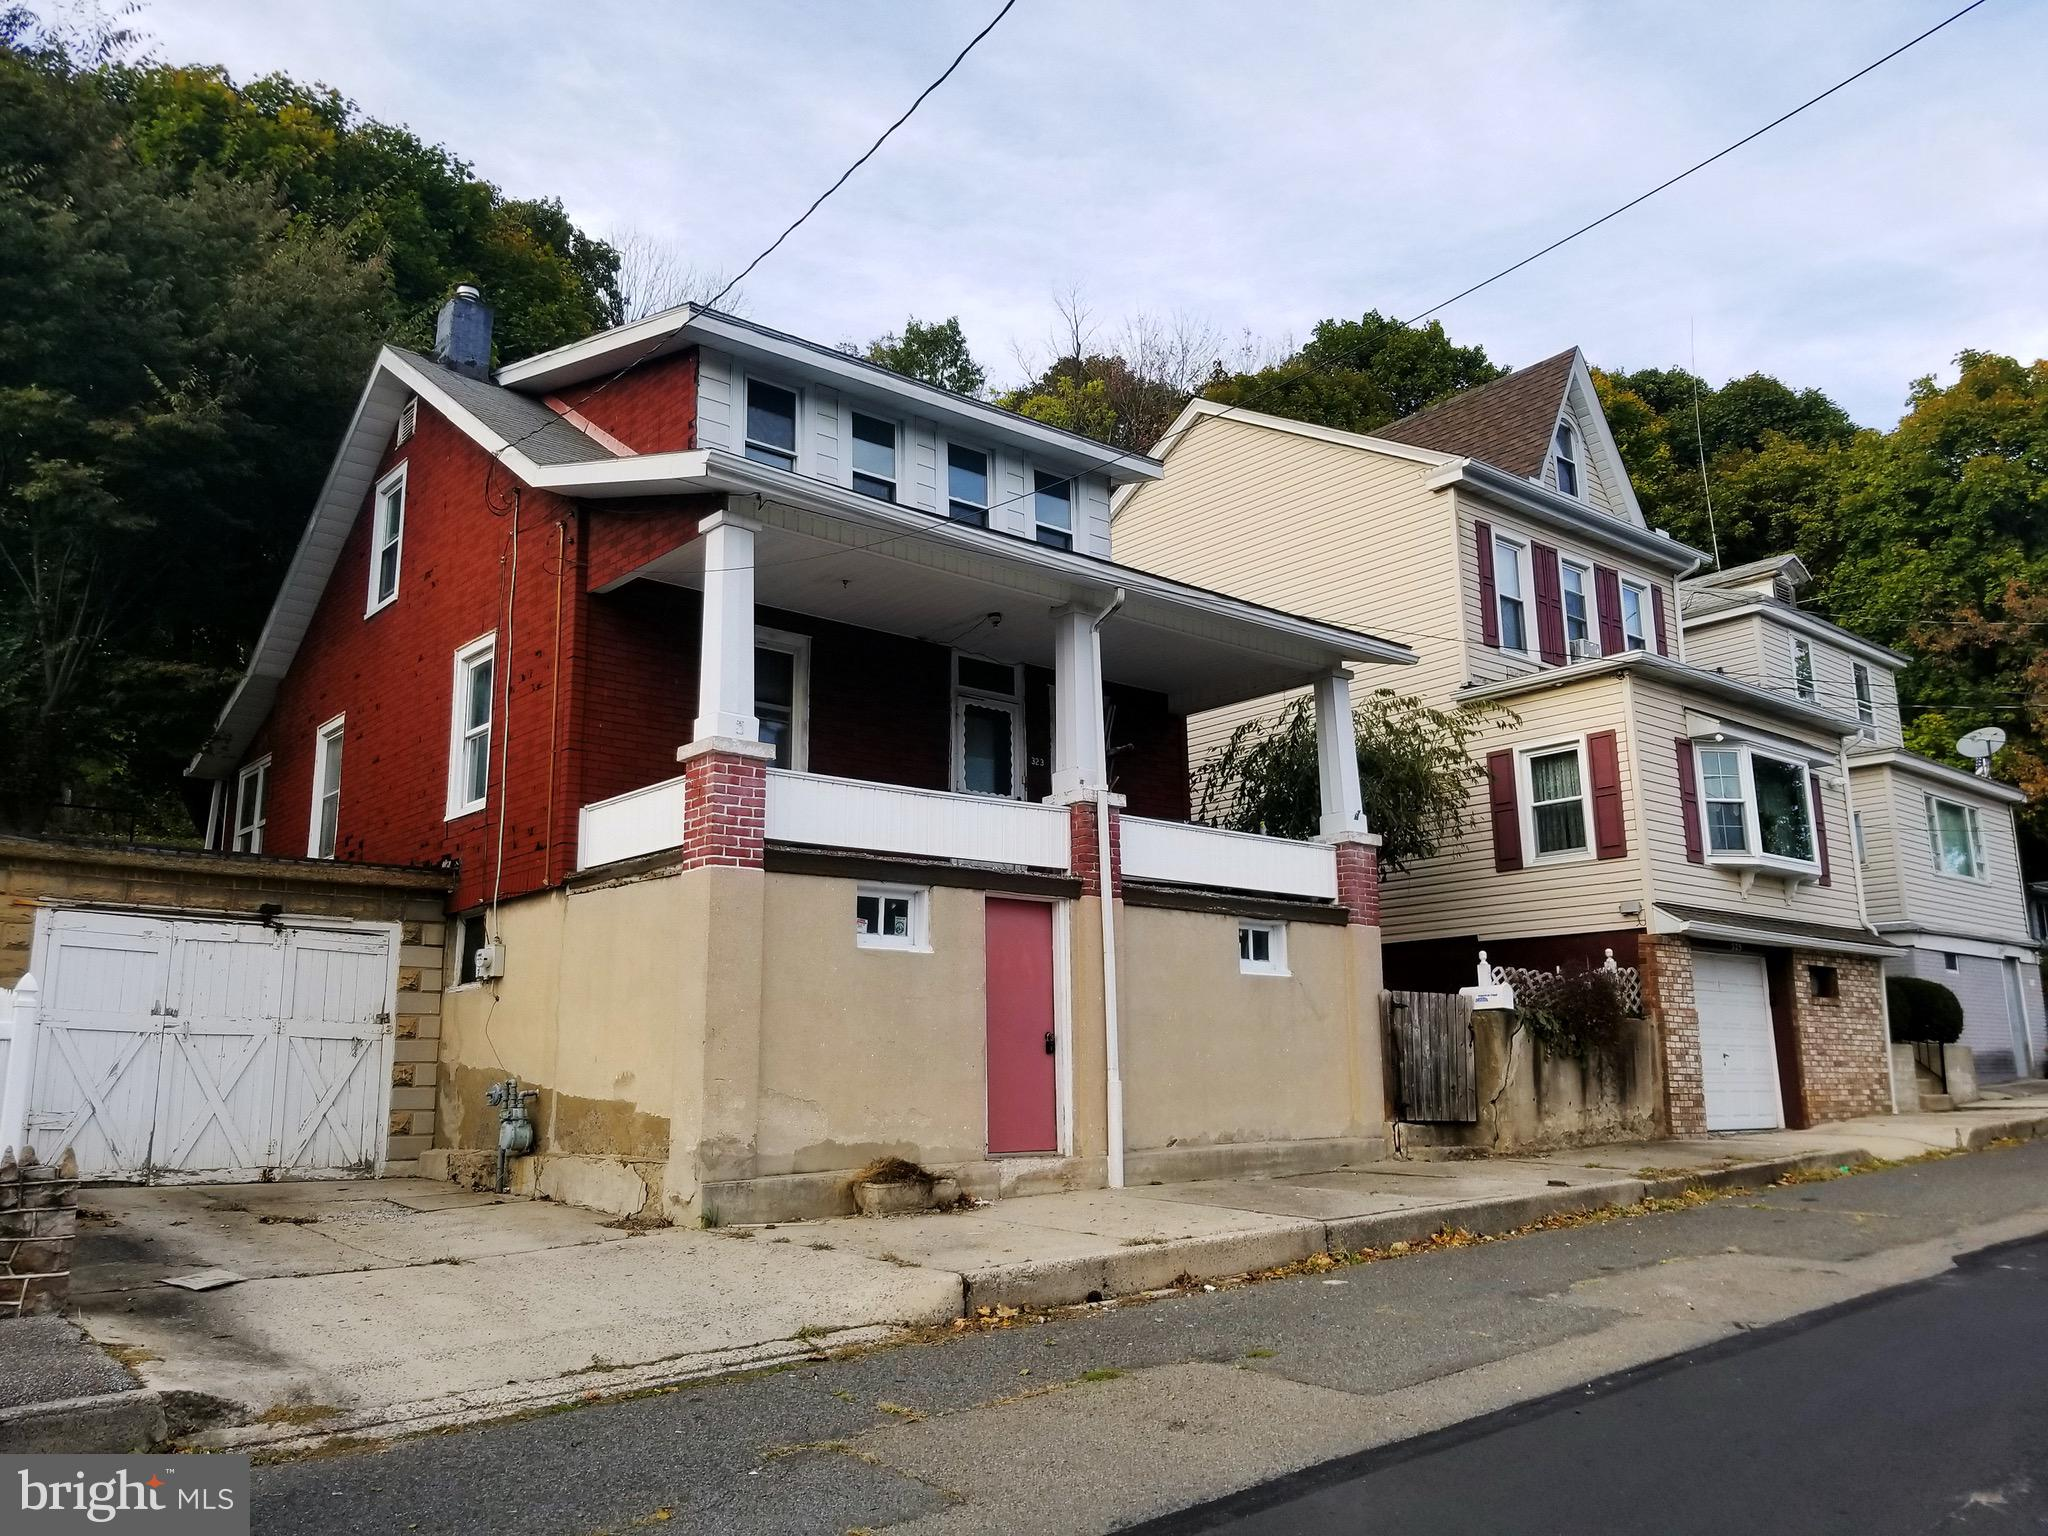 323 2ND STREET, PORT CARBON, PA 17965